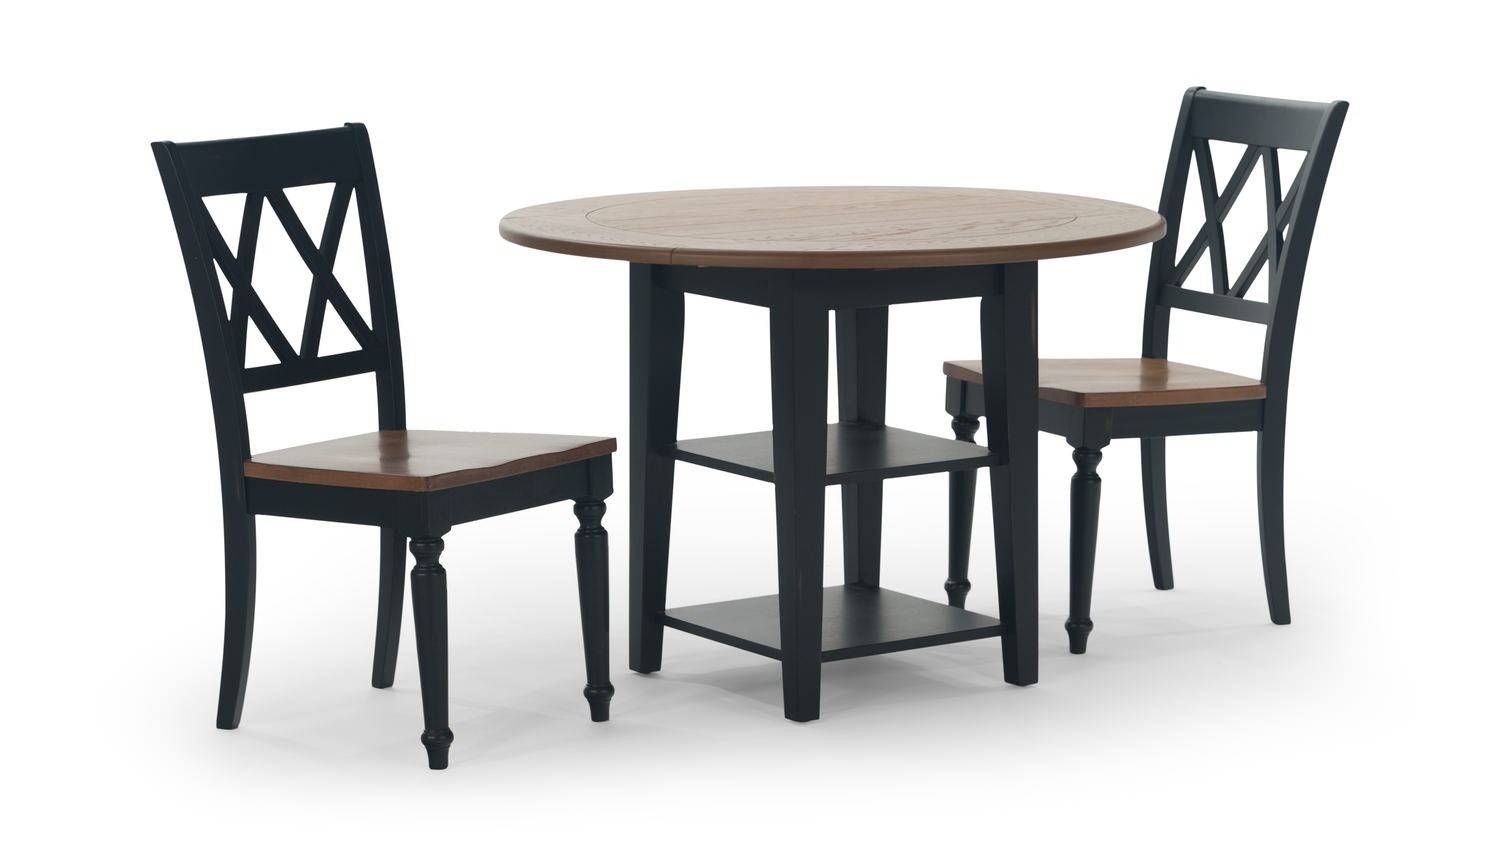 Al Fresco Black Drop Leaf Table and 2 Side Chairs HOM  : 356604 2 from www.homfurniture.com size 1500 x 856 jpeg 80kB